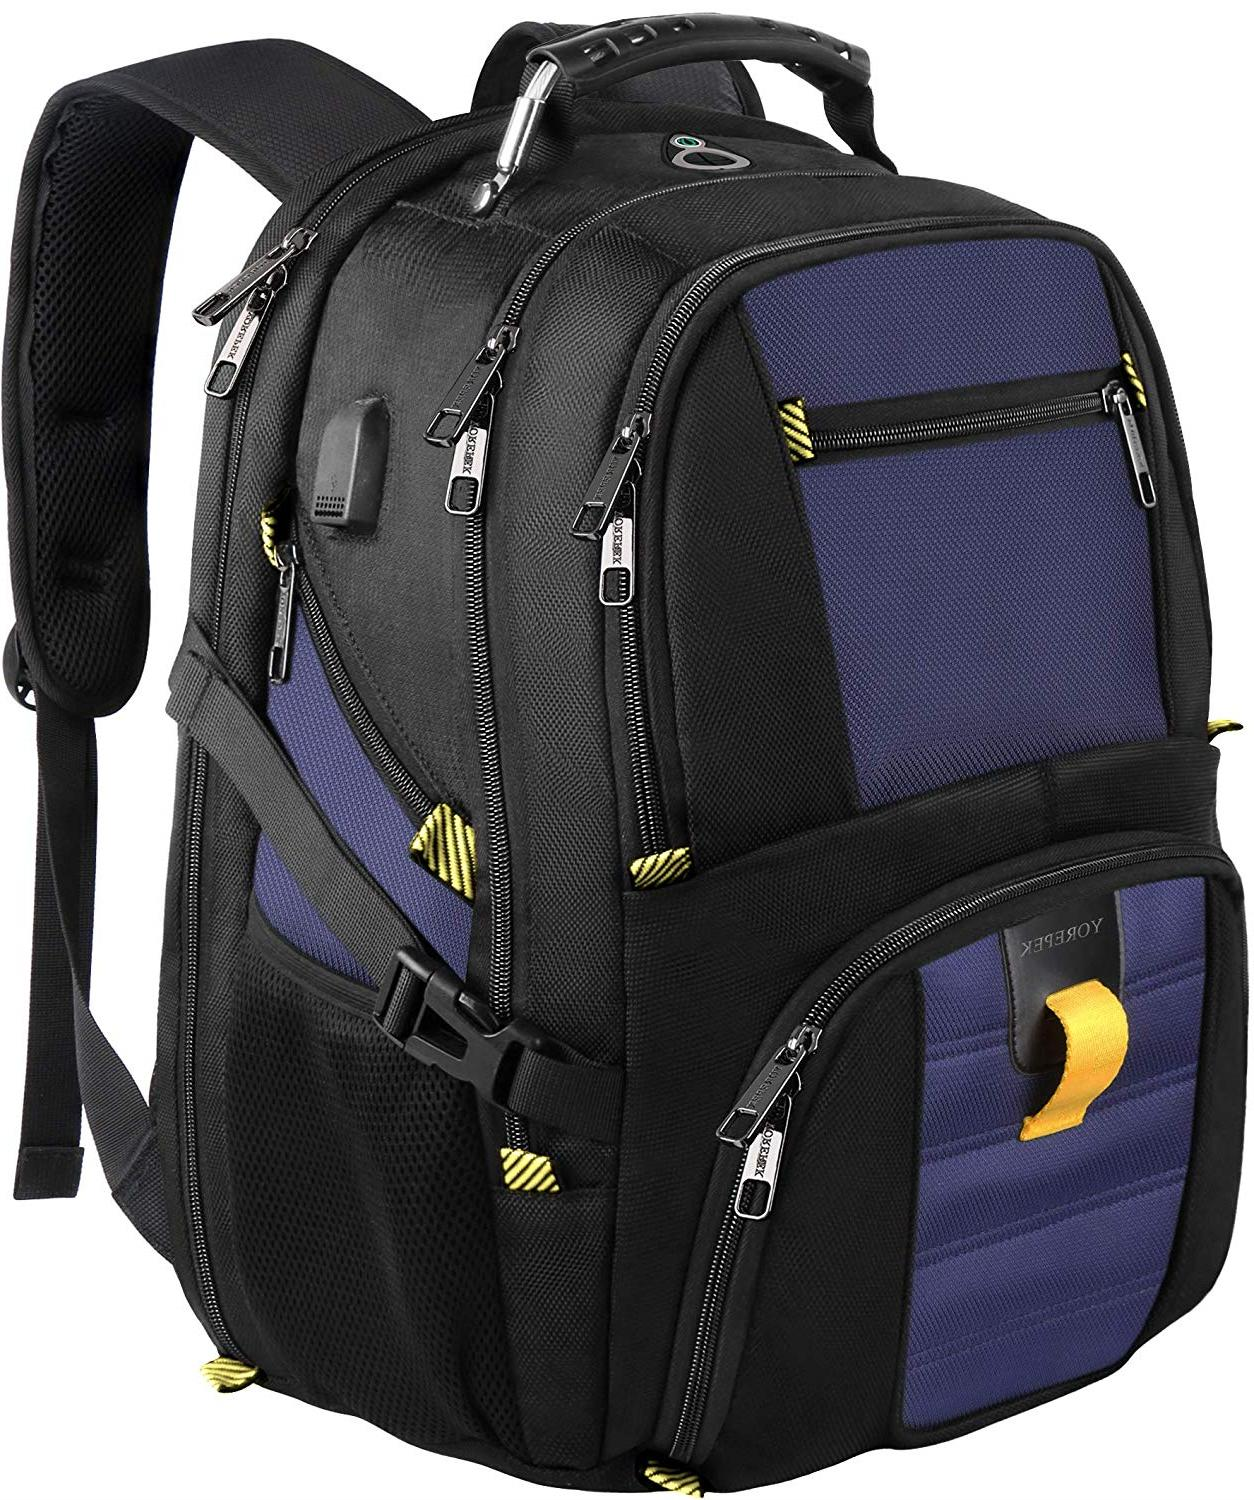 Bagpacks for Men, Extra Large Polyester College School Lapto